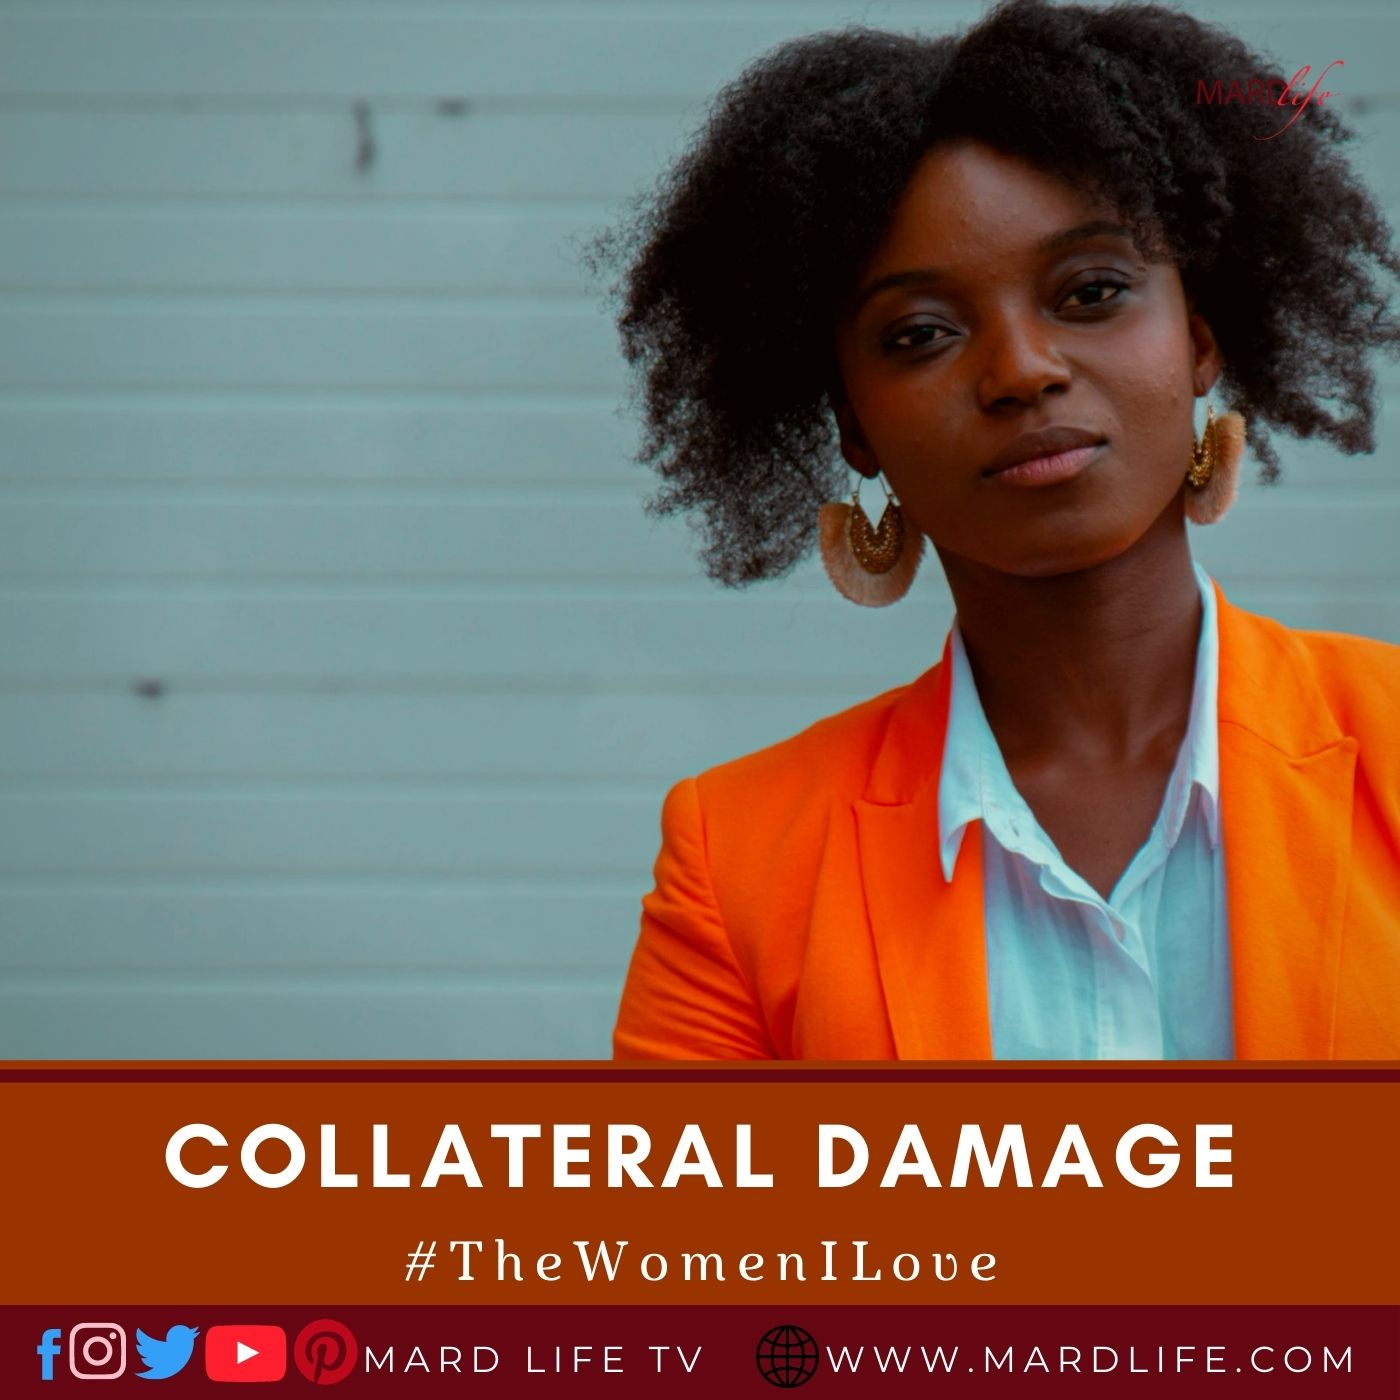 Happiness And Collateral Damage (The Women I Love)